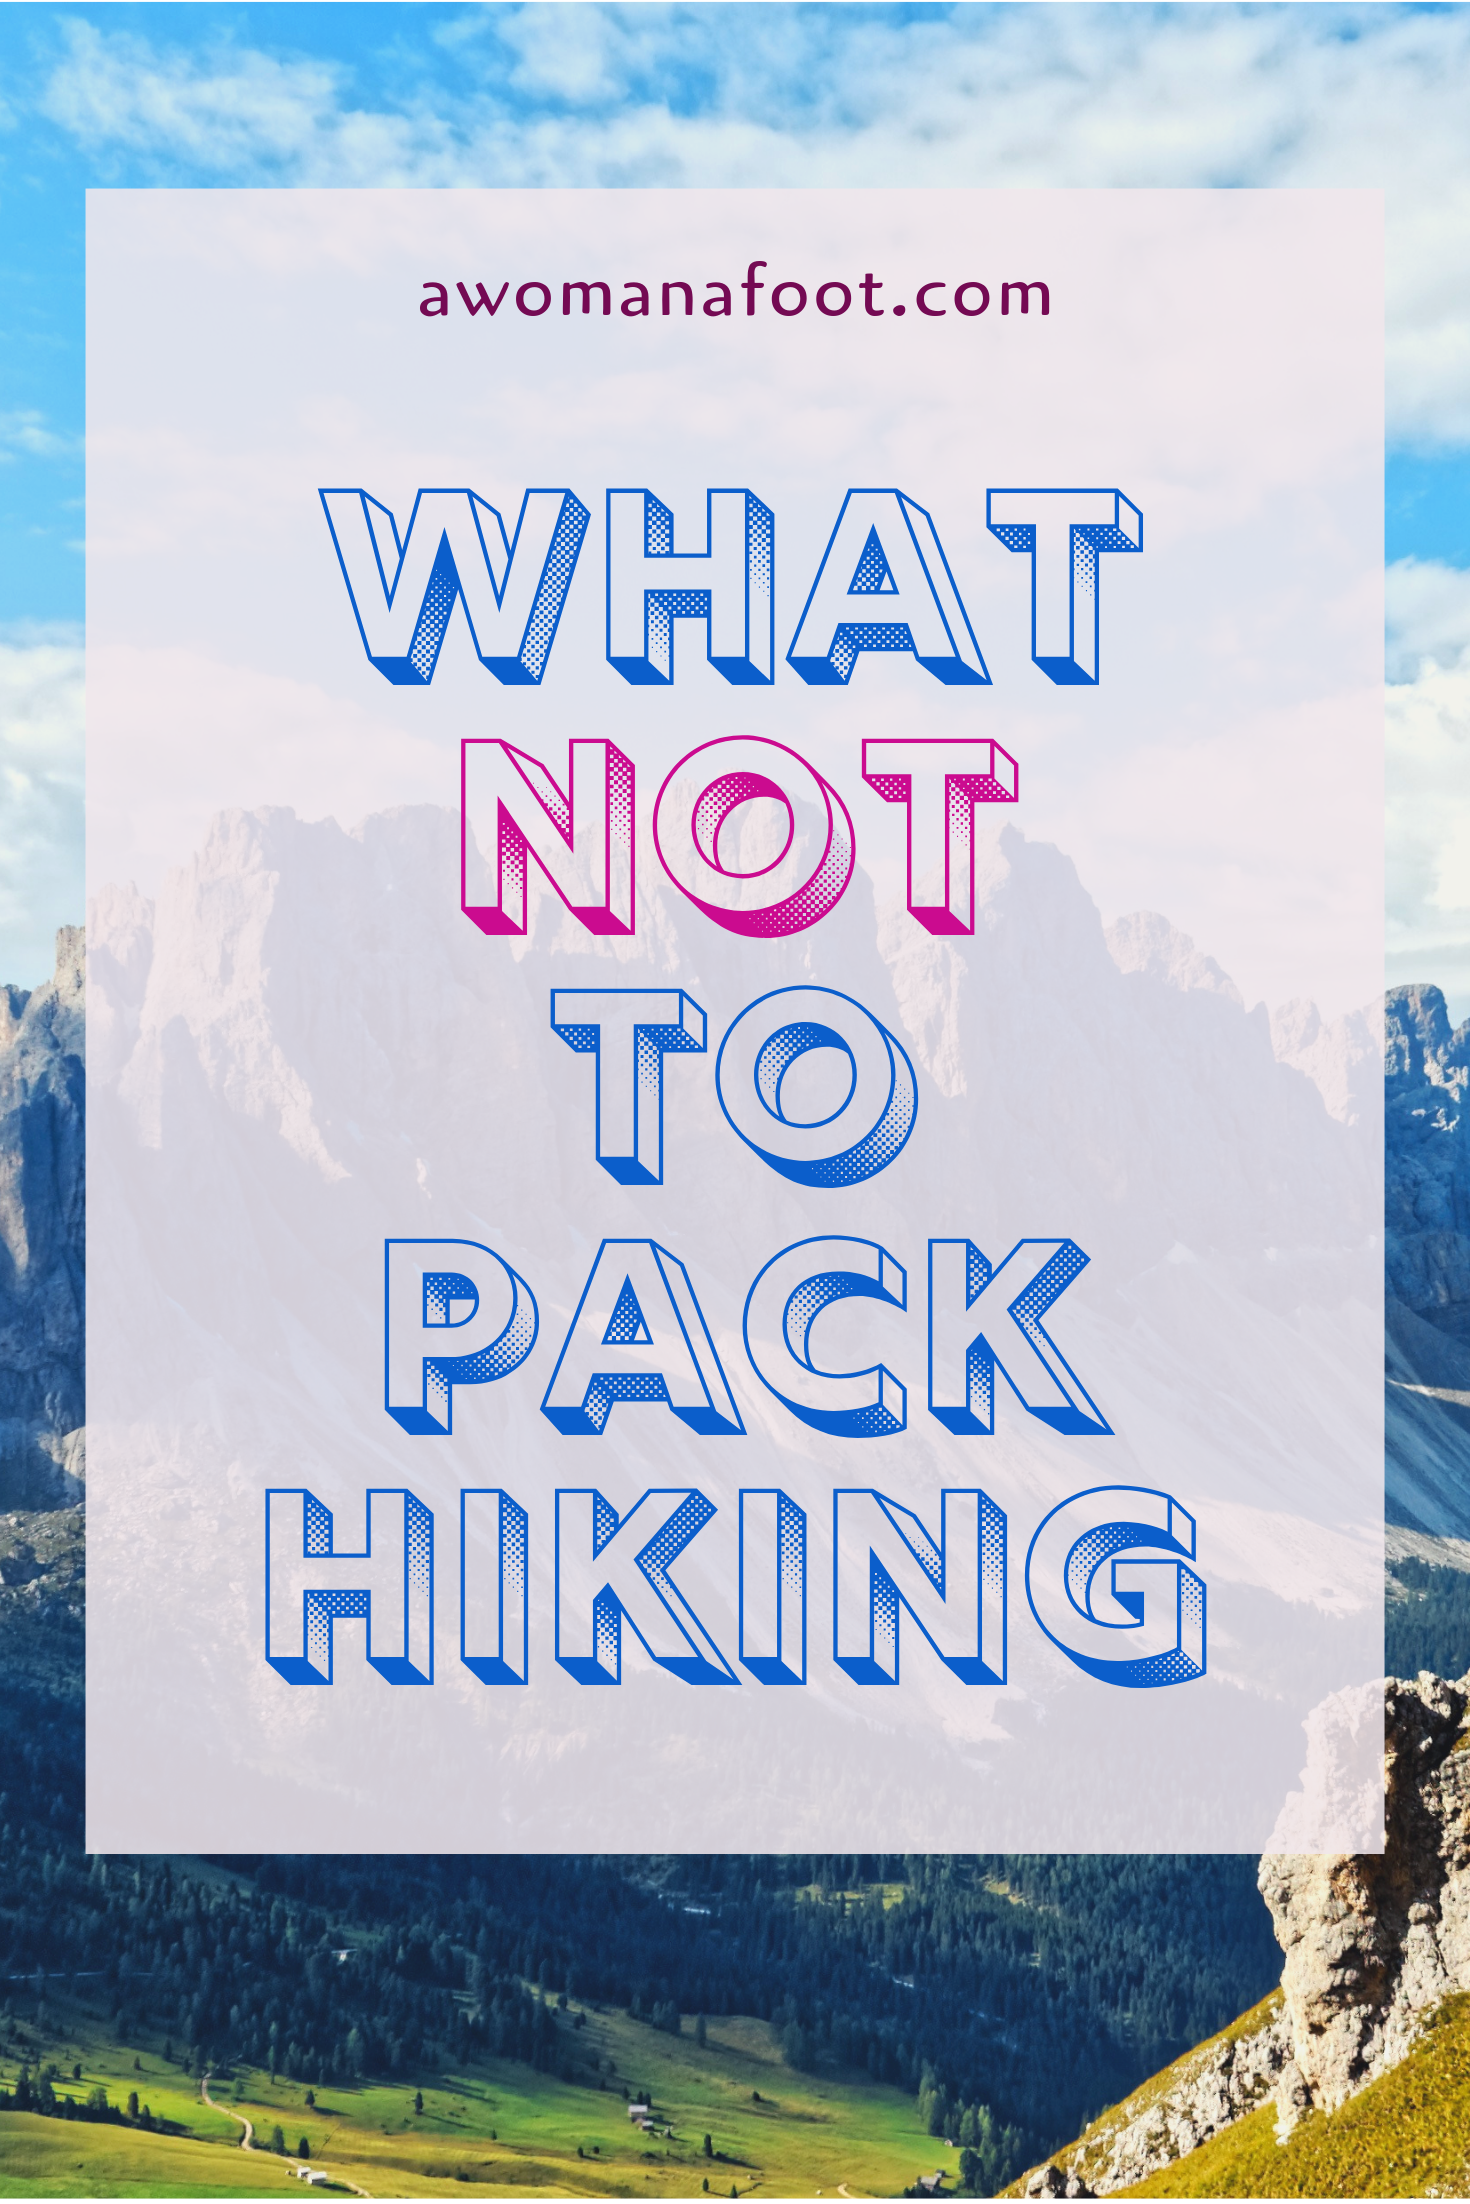 Preparing for a long hike? Make sure you DON'T pack those useless stuff! Safe money and cut on weight by packing only what you need! Learn more tips on lightweight hiking and camping @ Awomanafoot.com   #hiking   #camping   #hikinggear   #hikingtips   #budget   How to save money on hiking gear   How to go ultra-light hiking   What gear I don't need when camping?